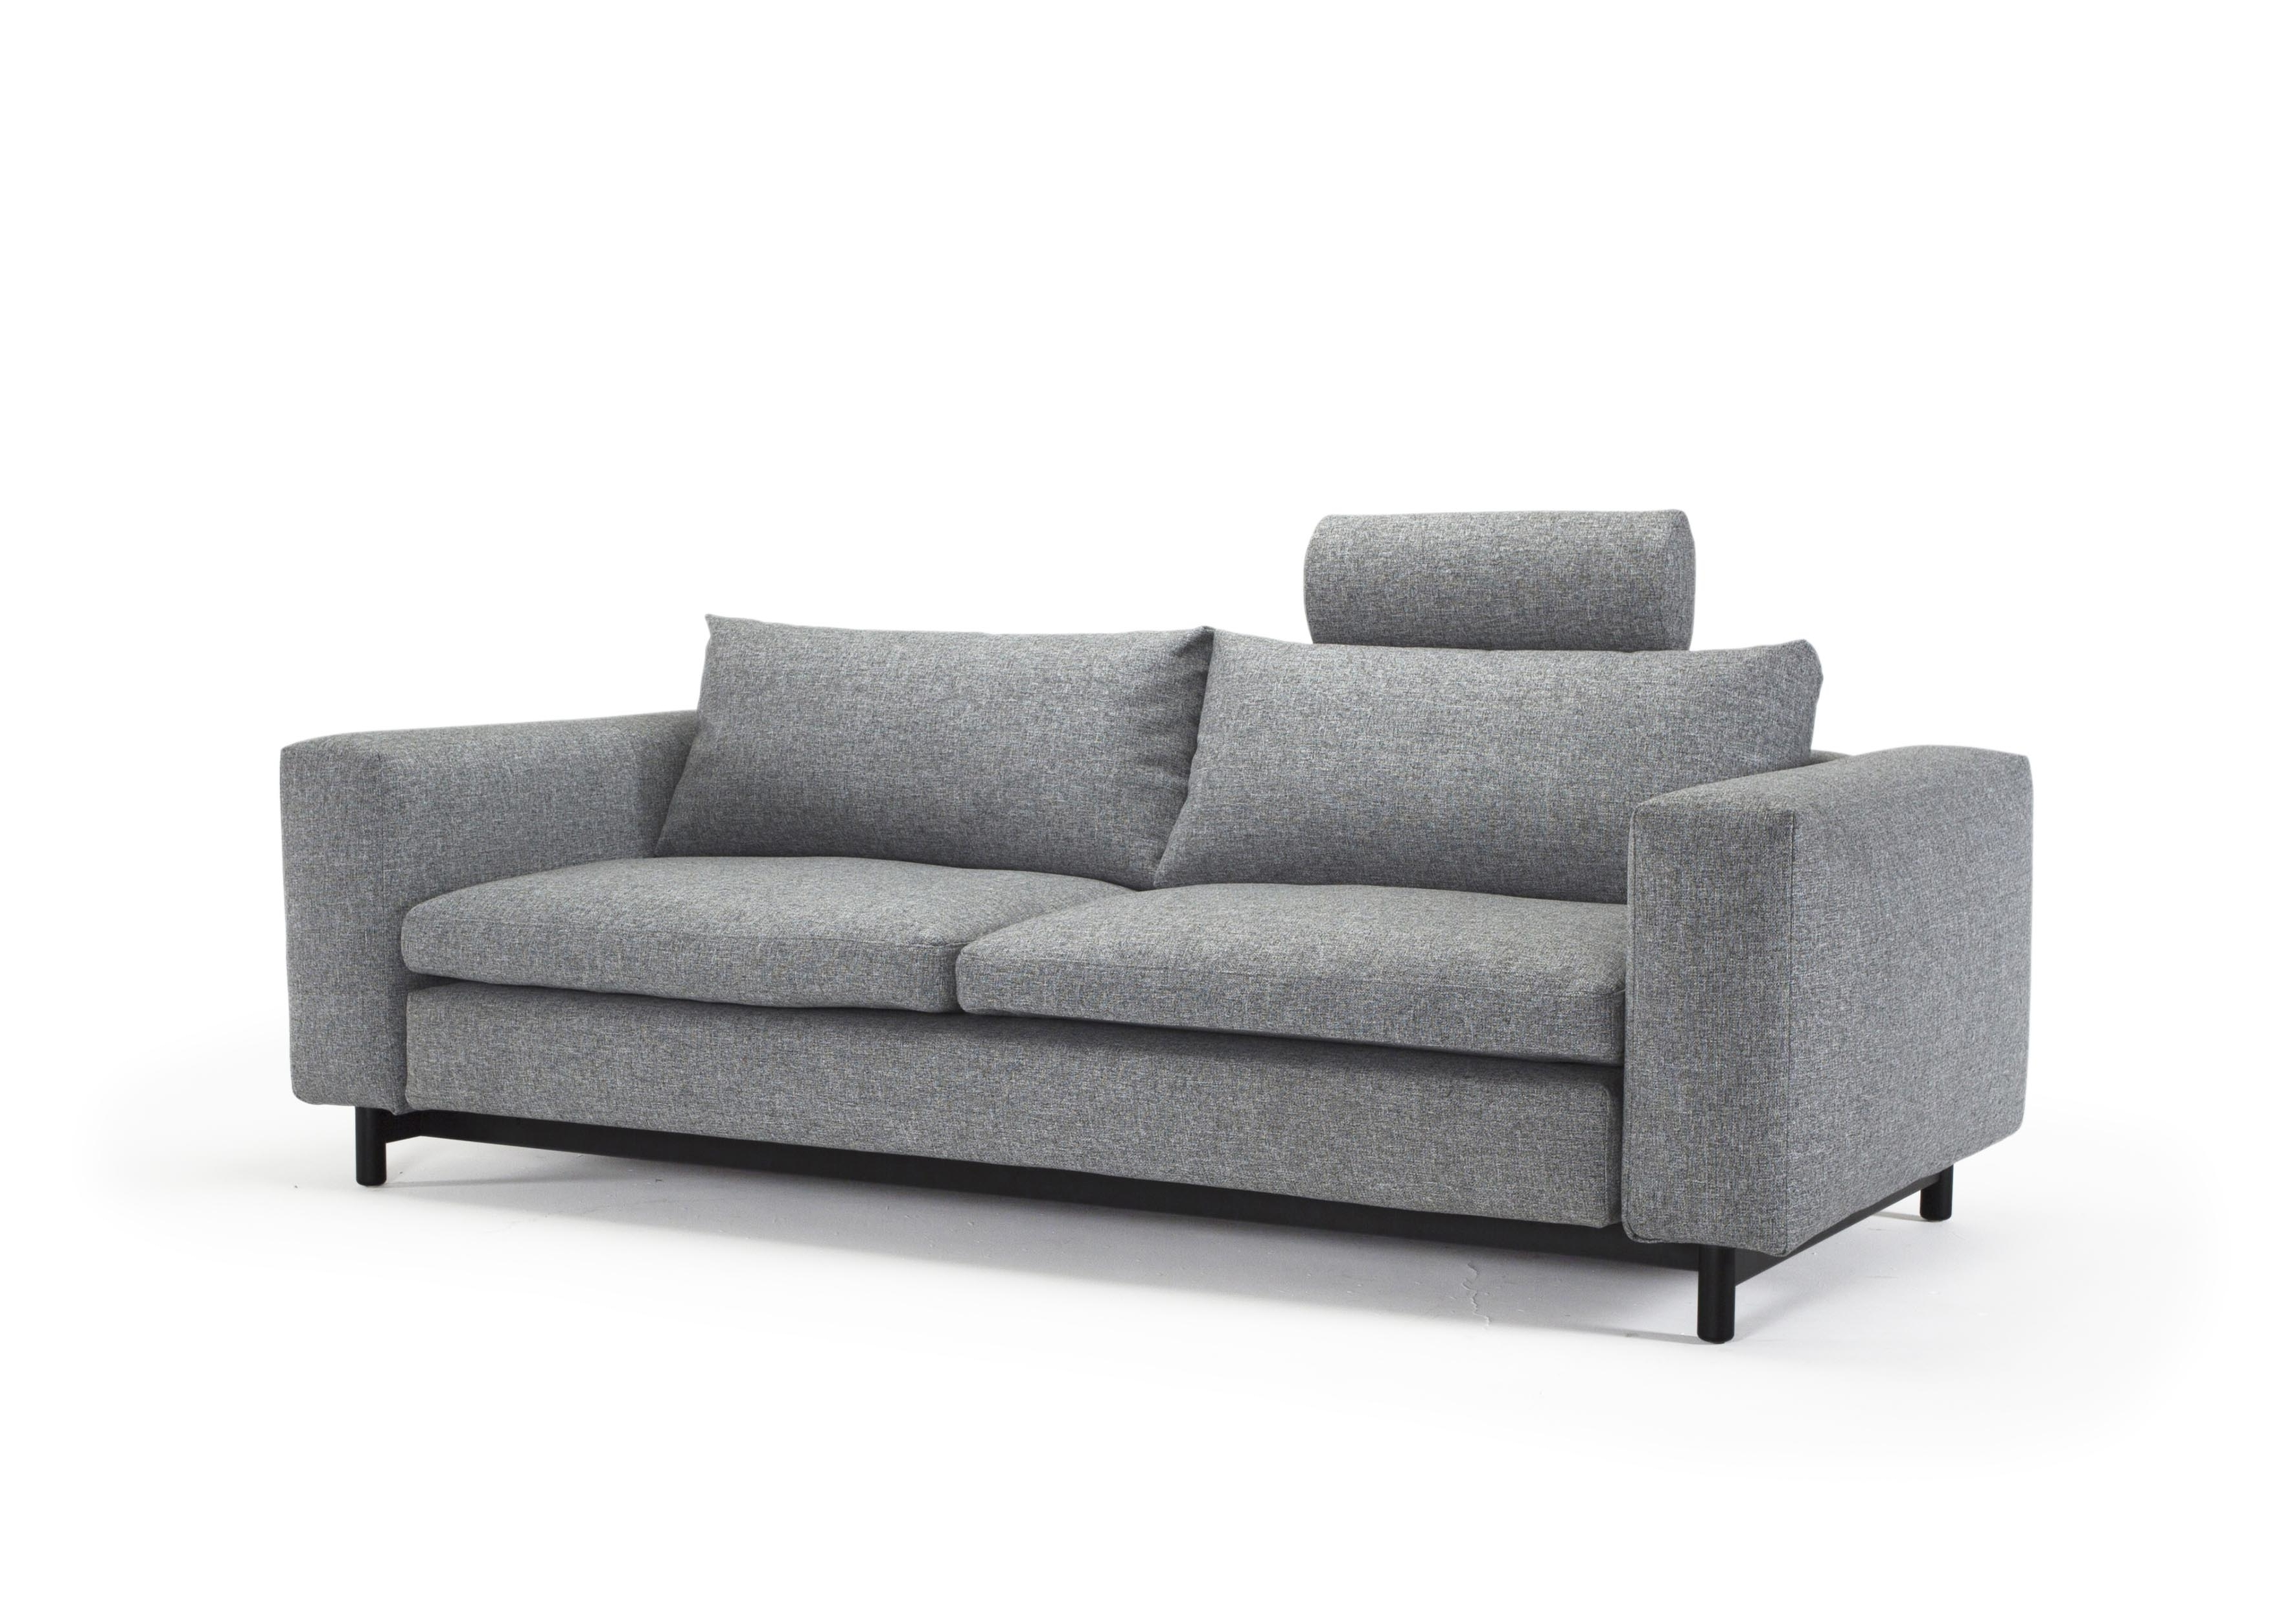 Queen Size Sofas In Famous Magni Sofa Bed (Queen Size) Twist Graniteinnovation (View 13 of 20)